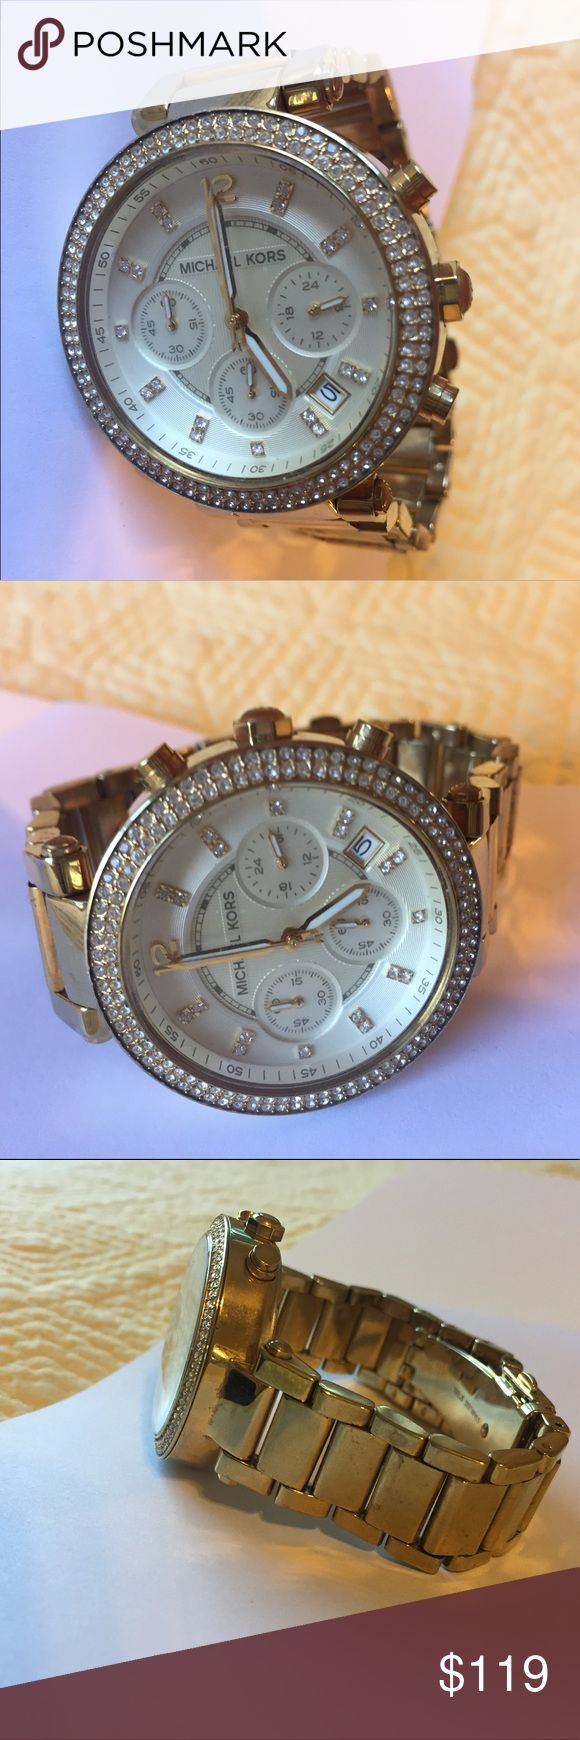 Authentic Michael Kors Gold Watch MK Gold watch used but still looks great on. Some wear in photos. Shows some sparkle while still a classy staple gold watch. Just needs battery. Michael Kors Jewelry